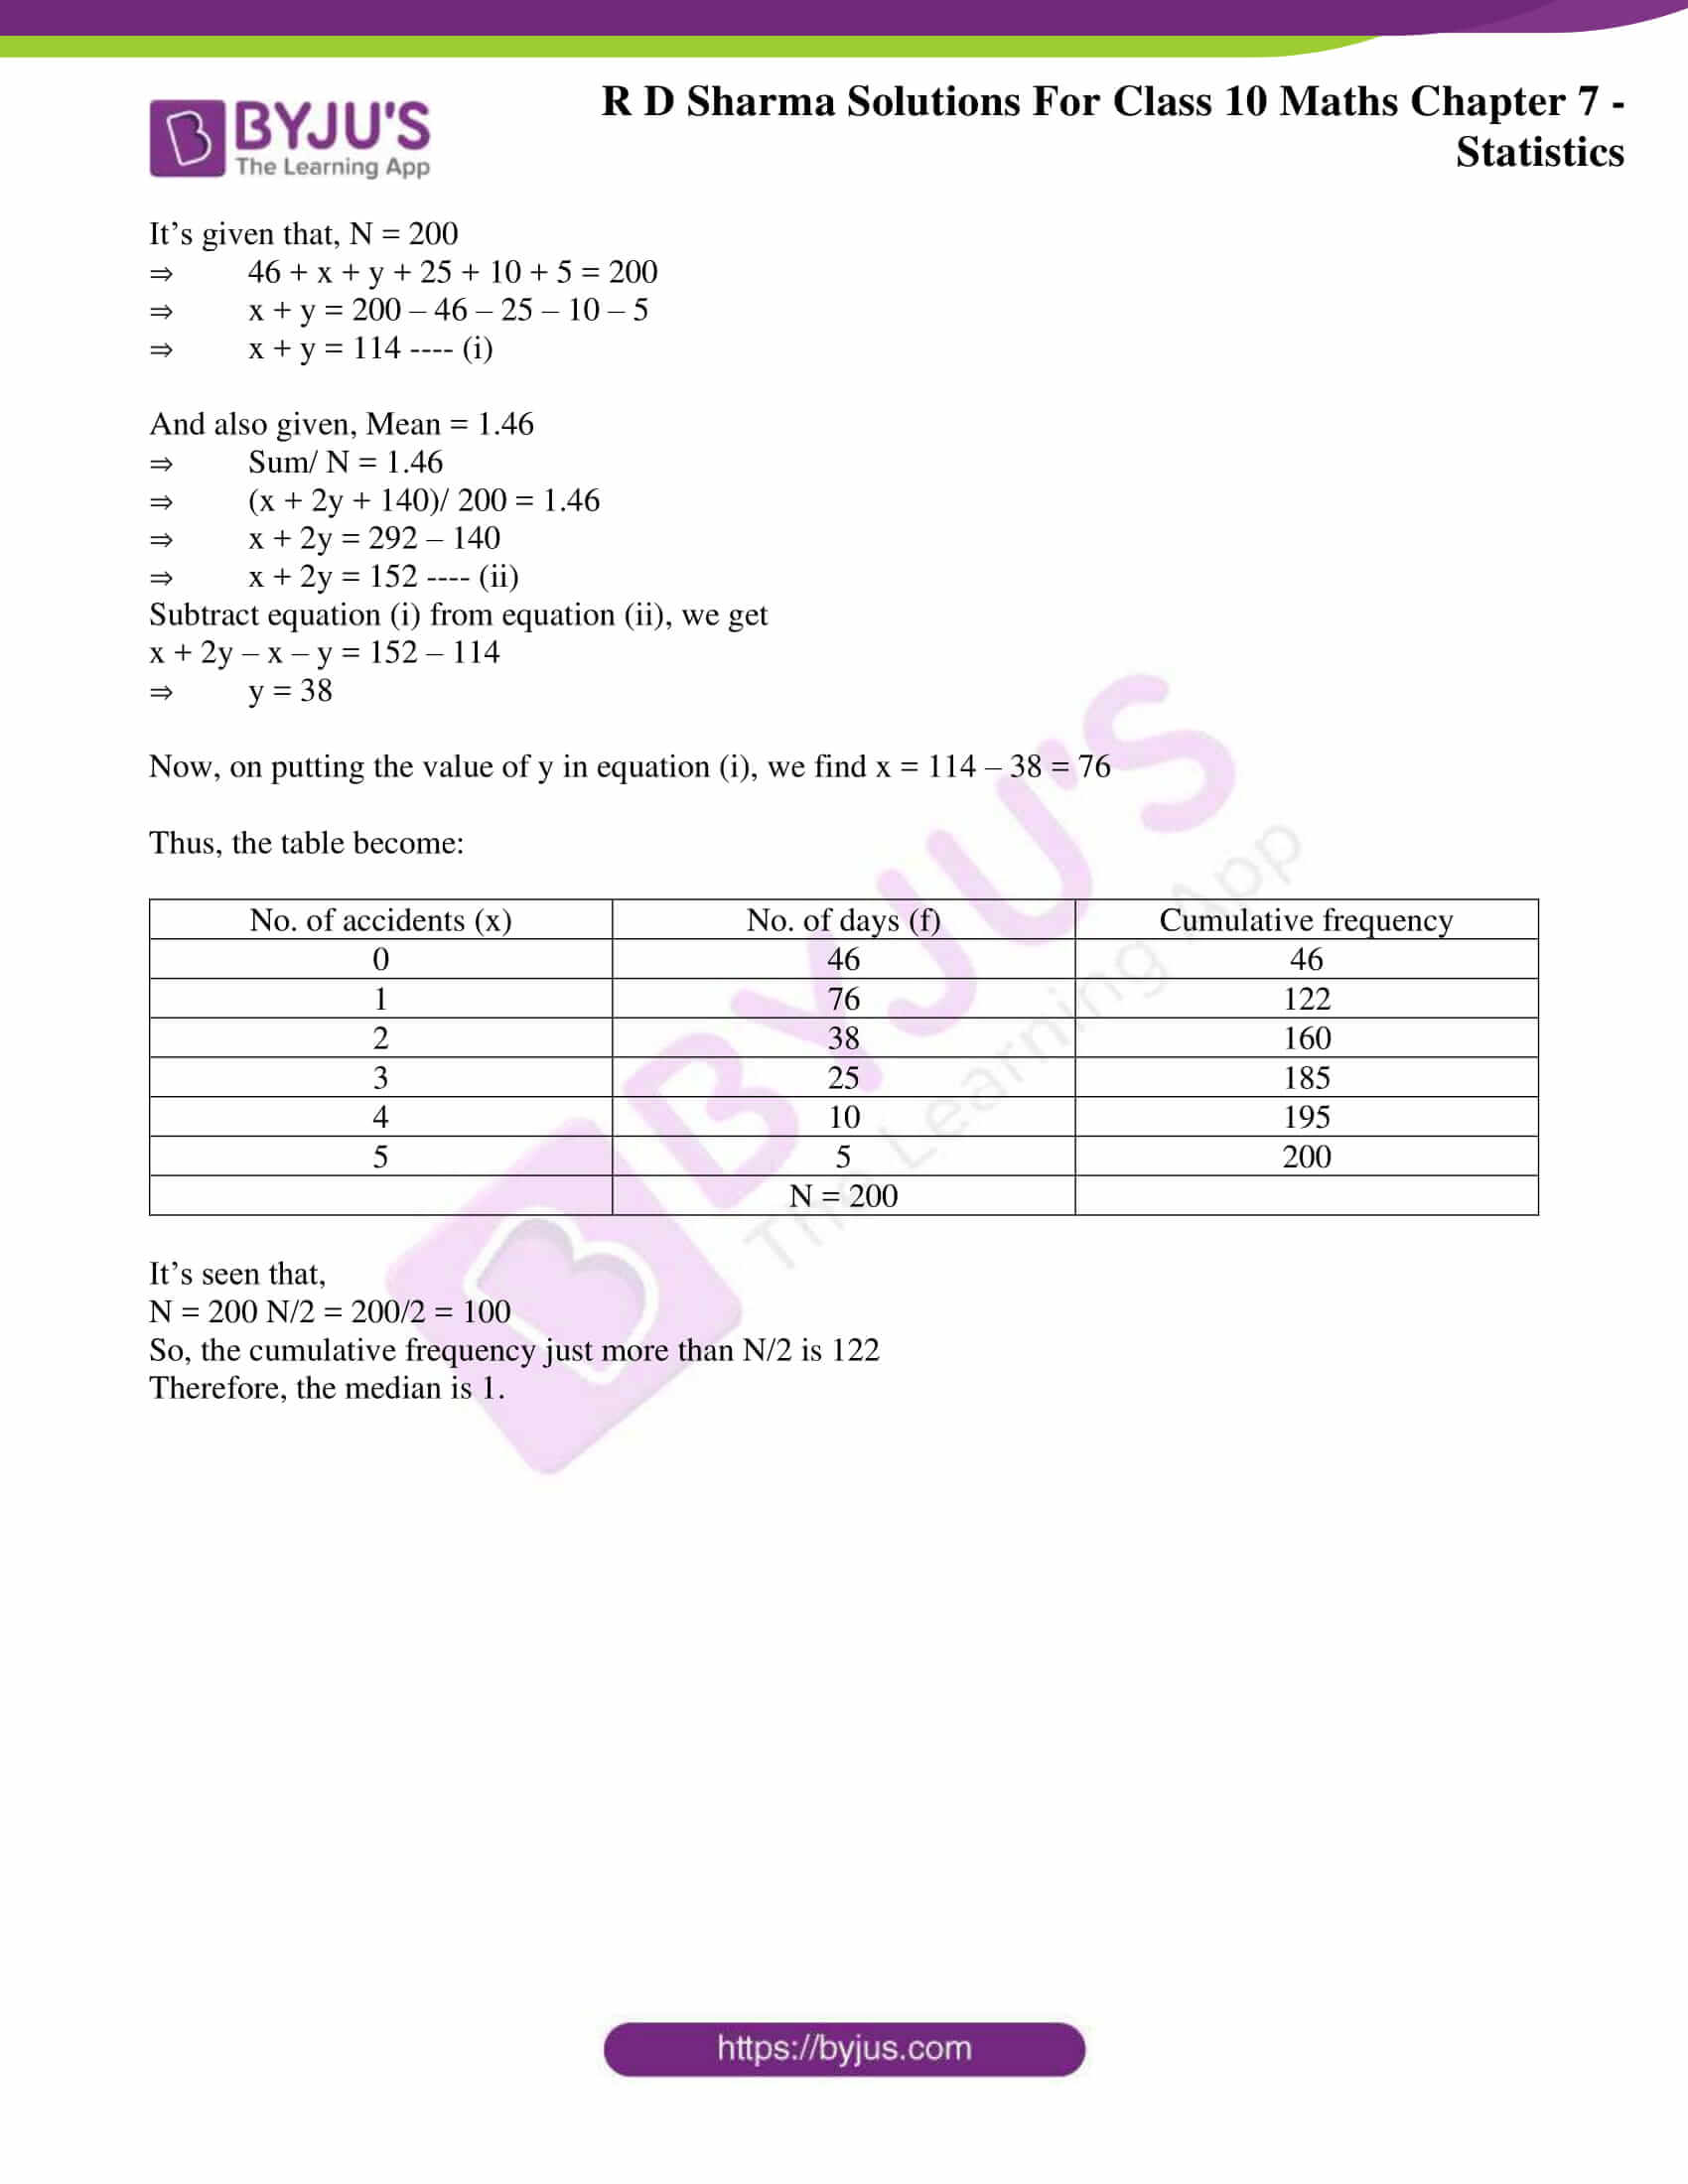 RD Sharma Solutions for Class 10 Chapter 7 Statistics Exercise 7.4 25